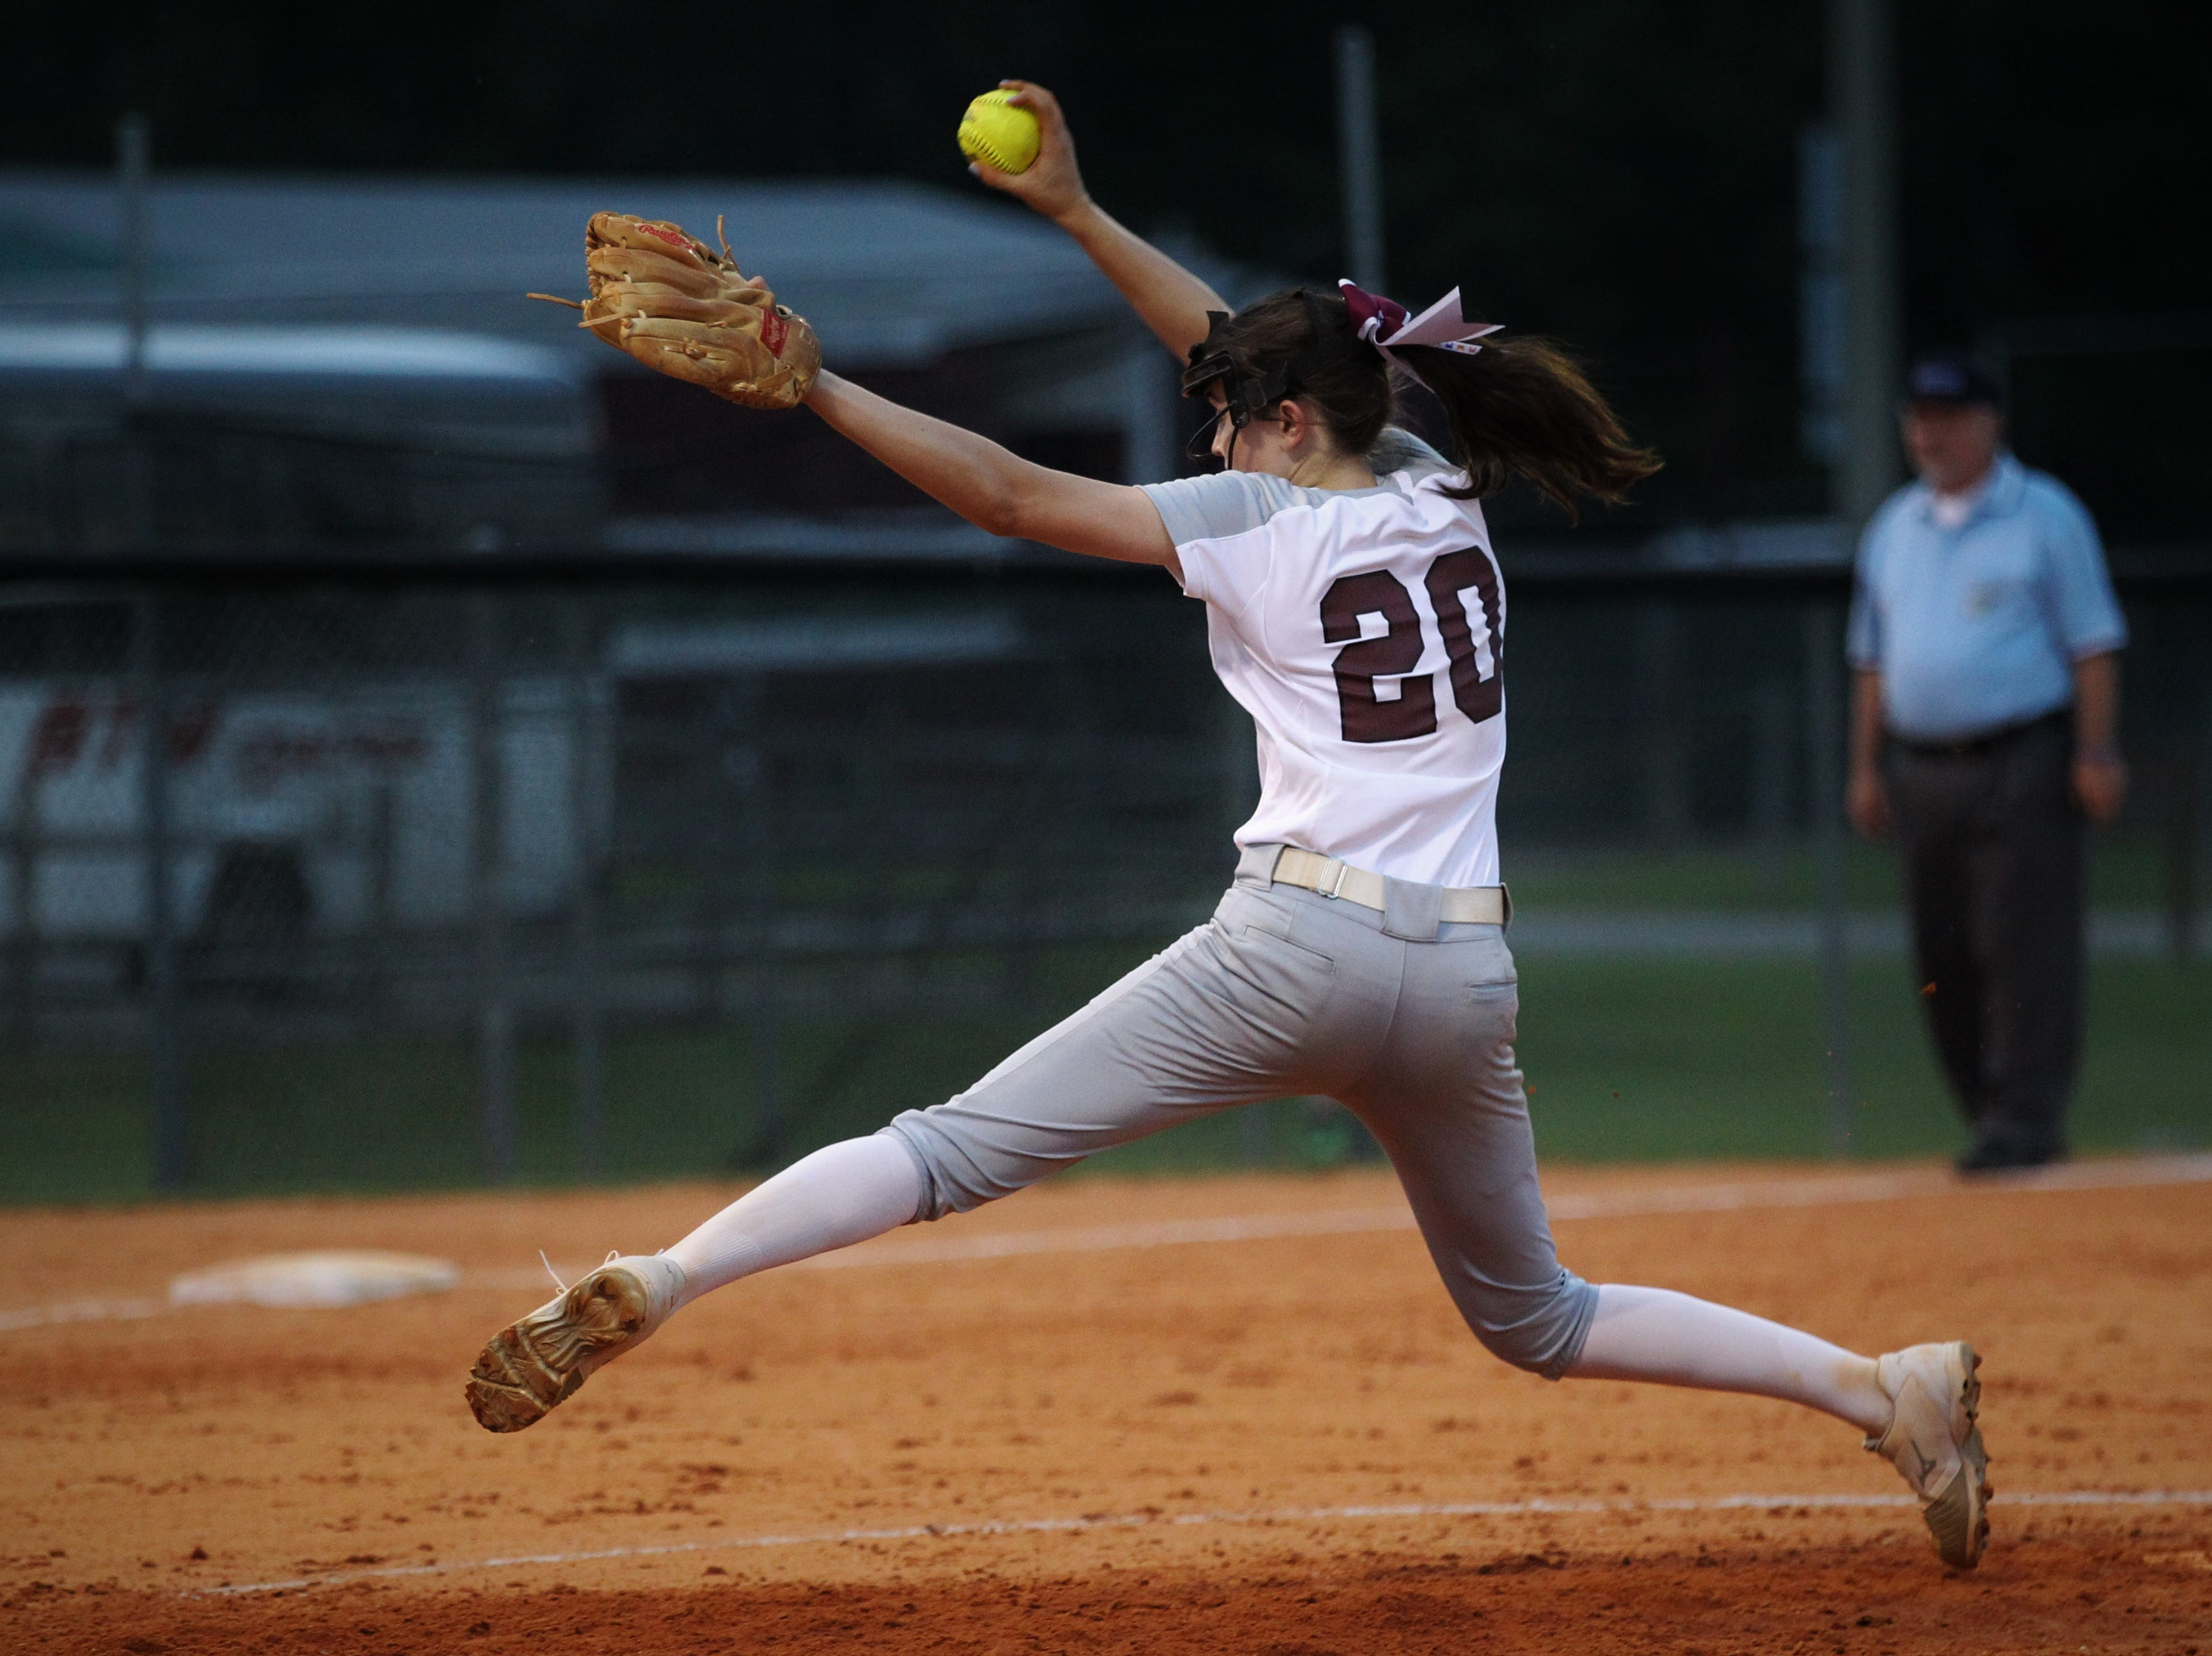 Chiles senior Dani Bauer pitches as the Timberwolves beat Atlantic Coast 6-4 during a Region 1-8A quarterfinal softball game on Wednesday, May 8, 2019.